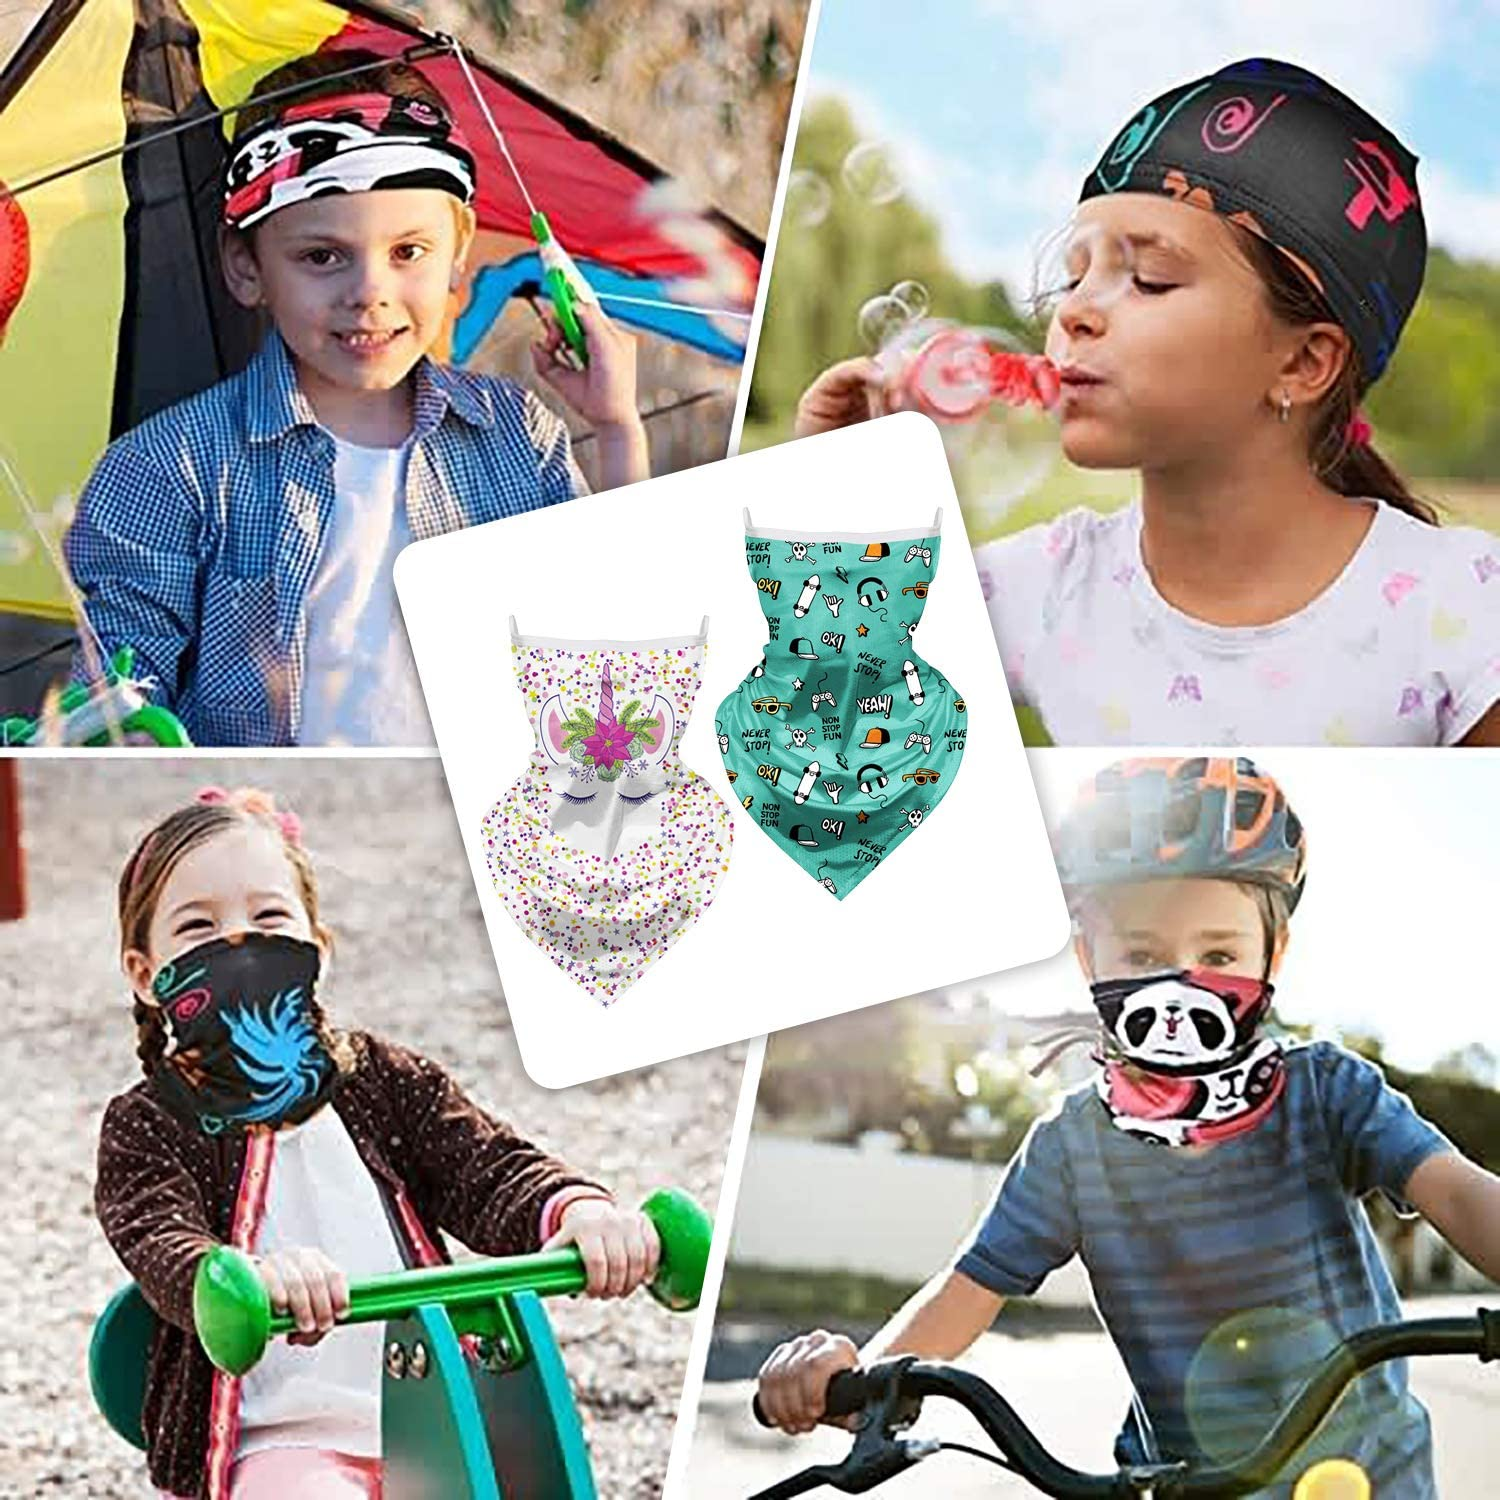 FAHOTE Kids Face Mask Bandanas with Ear Loops Boy Neck Gaiter Headband Girl Face Cover Scarf Balaclava